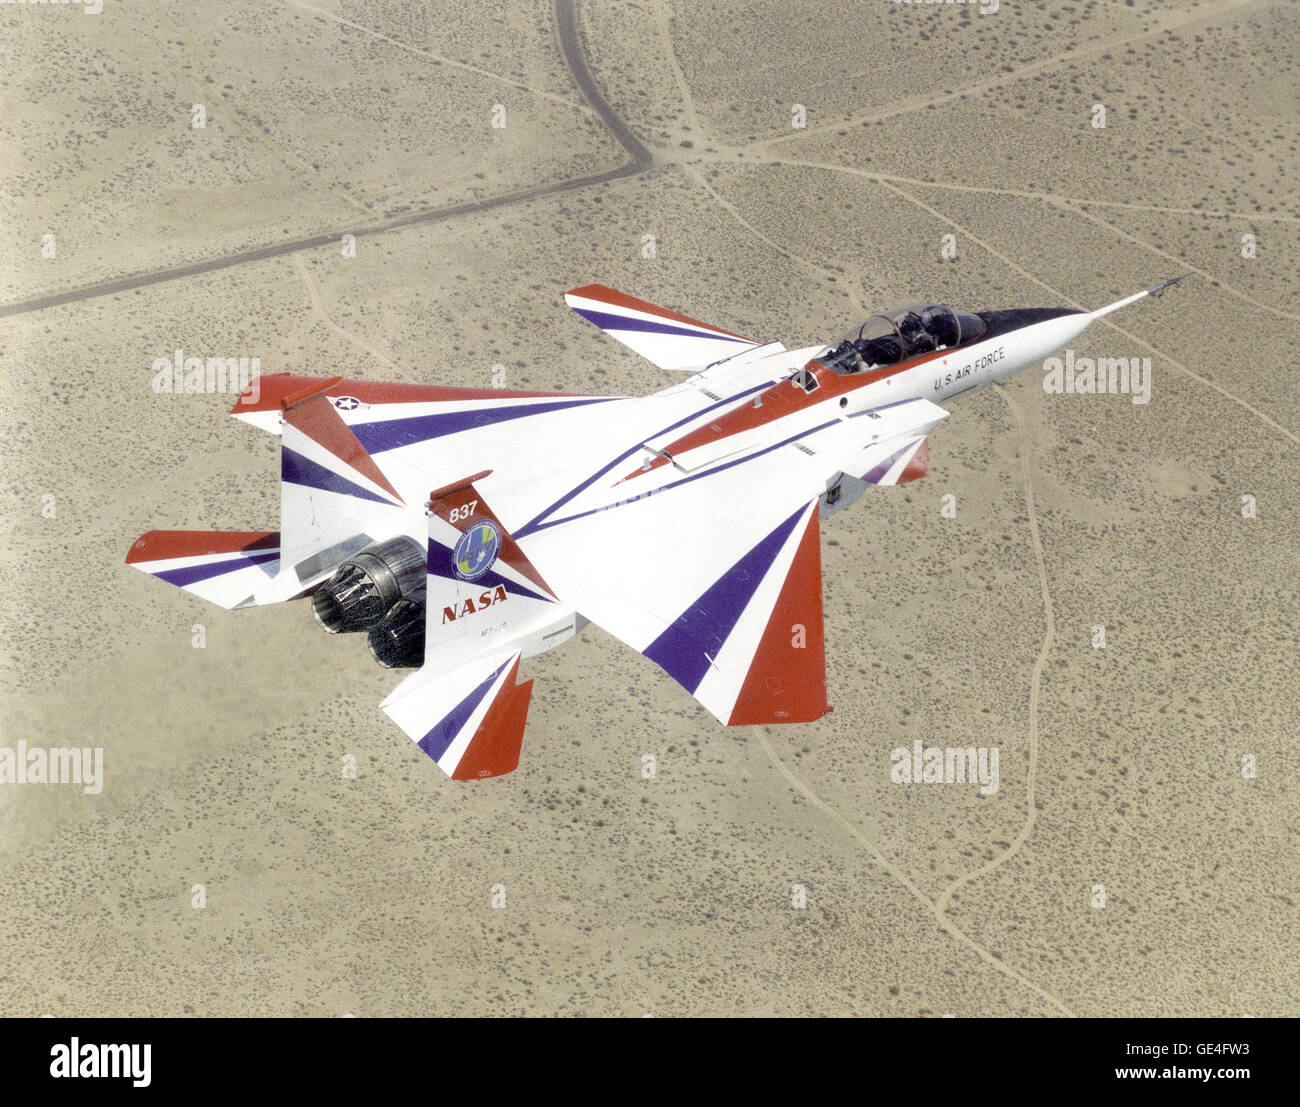 Engine Control Stock Photos Images Alamy Schematic August 1958 American Modeler Airplanes And Rockets 1 1997 The F 15 Active In Flight Over Mojave